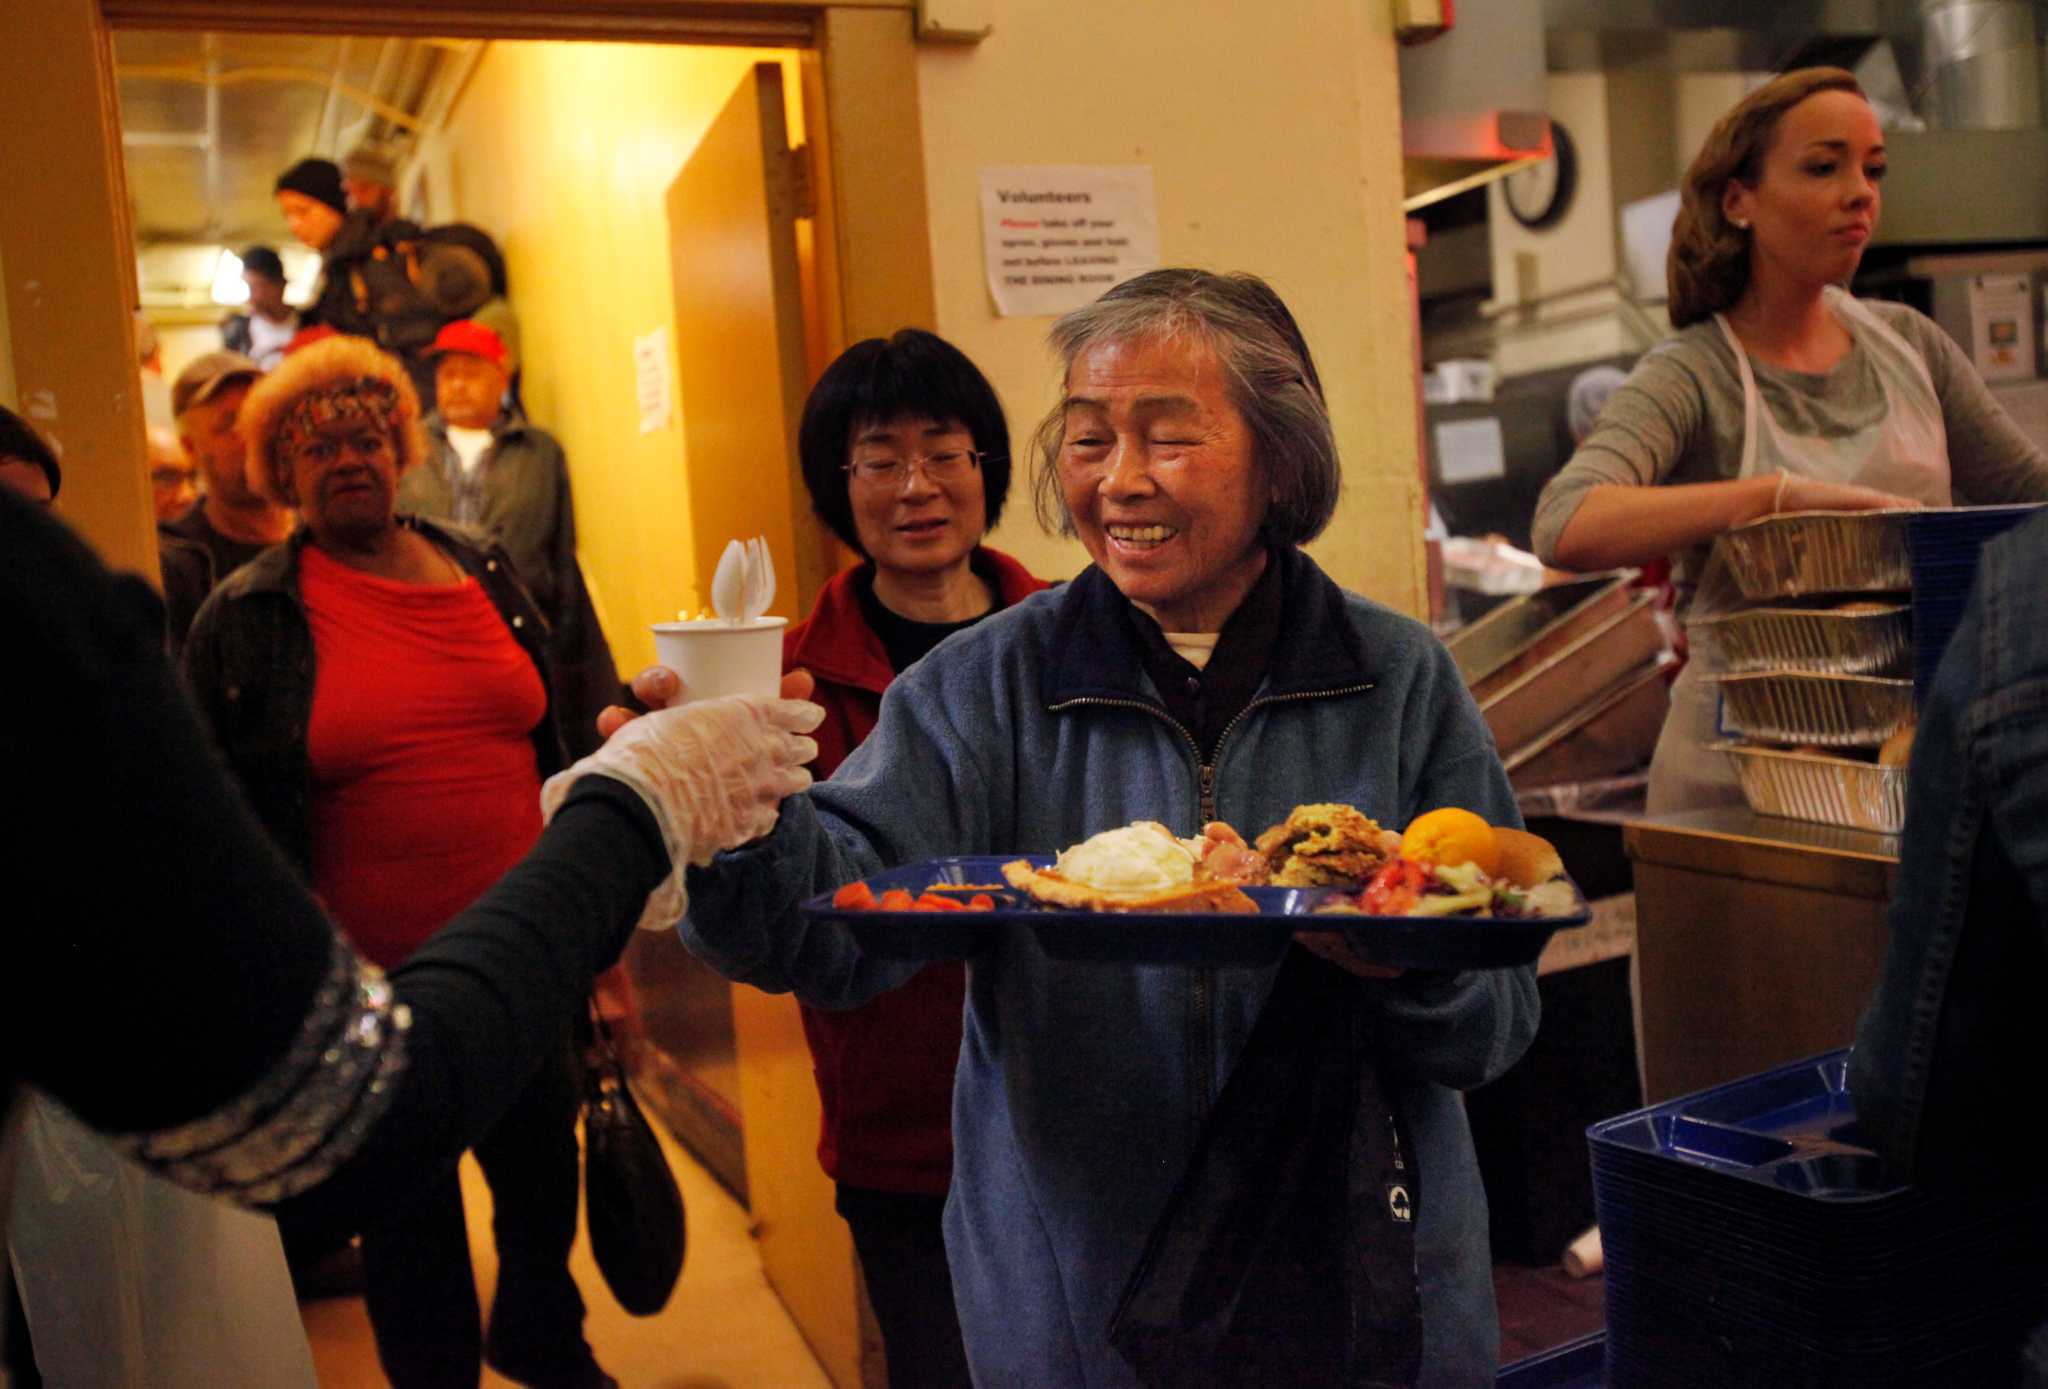 ordinary San Francisco Soup Kitchen Volunteer #8: Yiau smiles as she receives plasticware with her meal at Glide Memorial Church during their annual